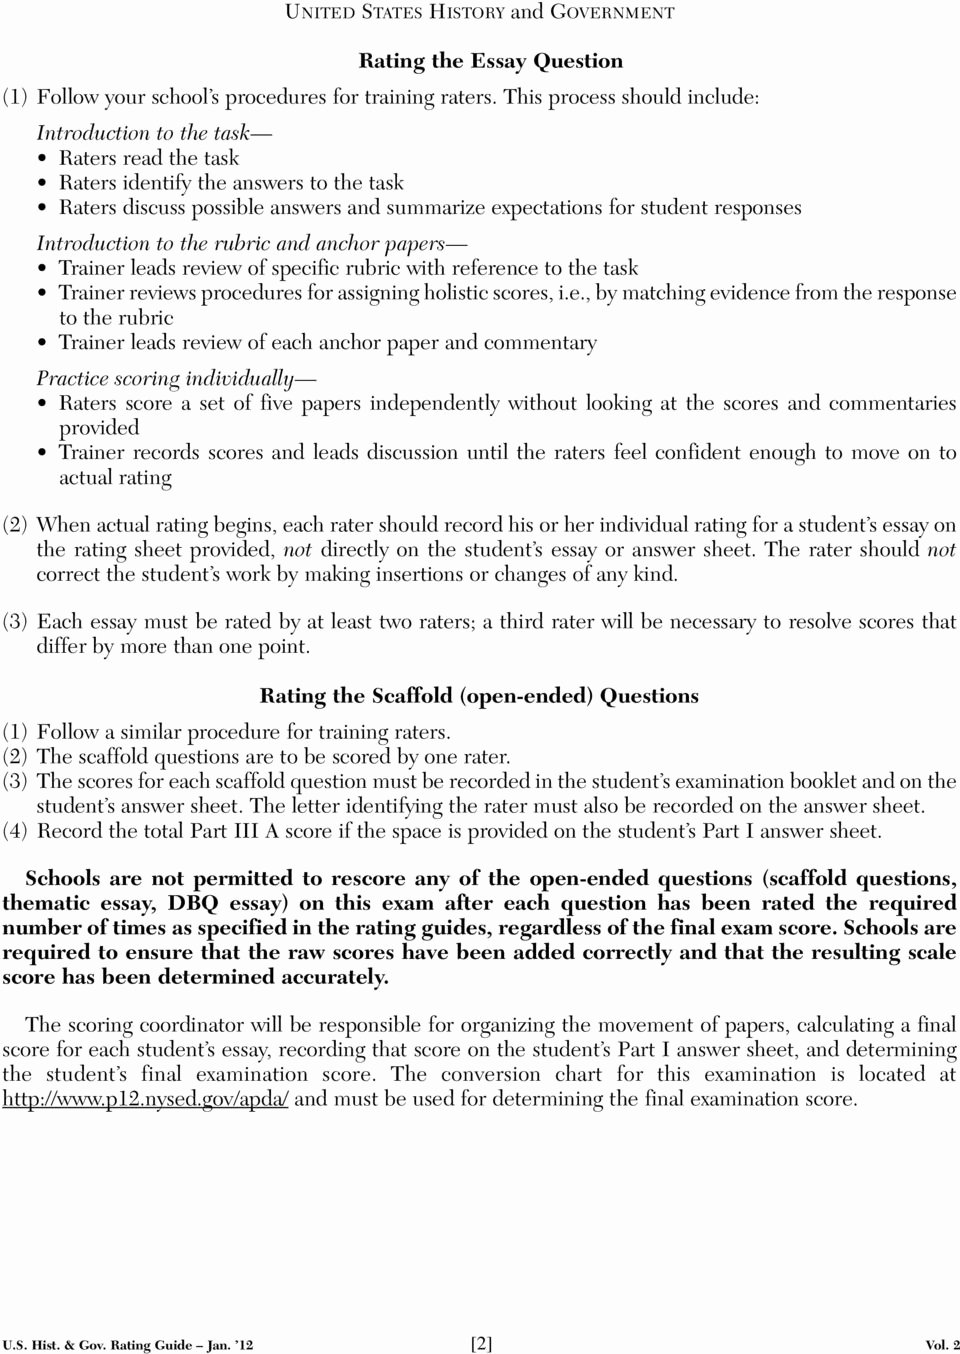 Apush Long Essay Examples 2015 New 56 Apush Essay Examples Colonial Dbq at Essaypedia